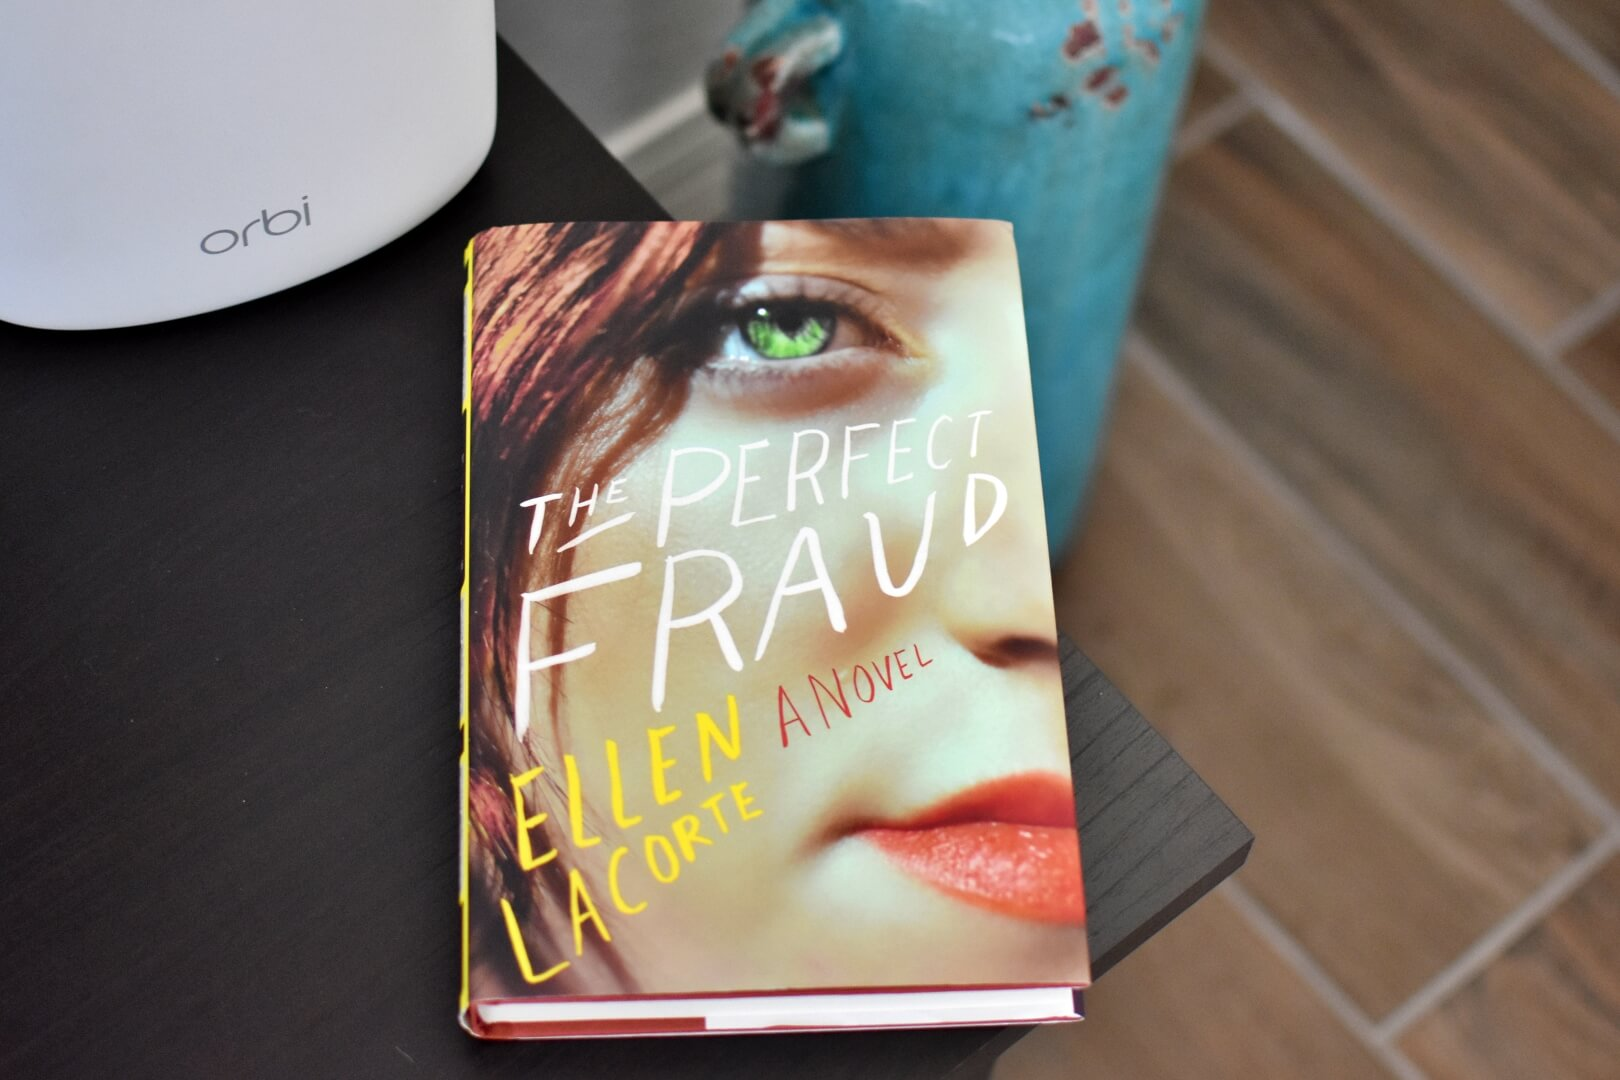 Book cover for The Perfect Fraud - review for Book Club Chat